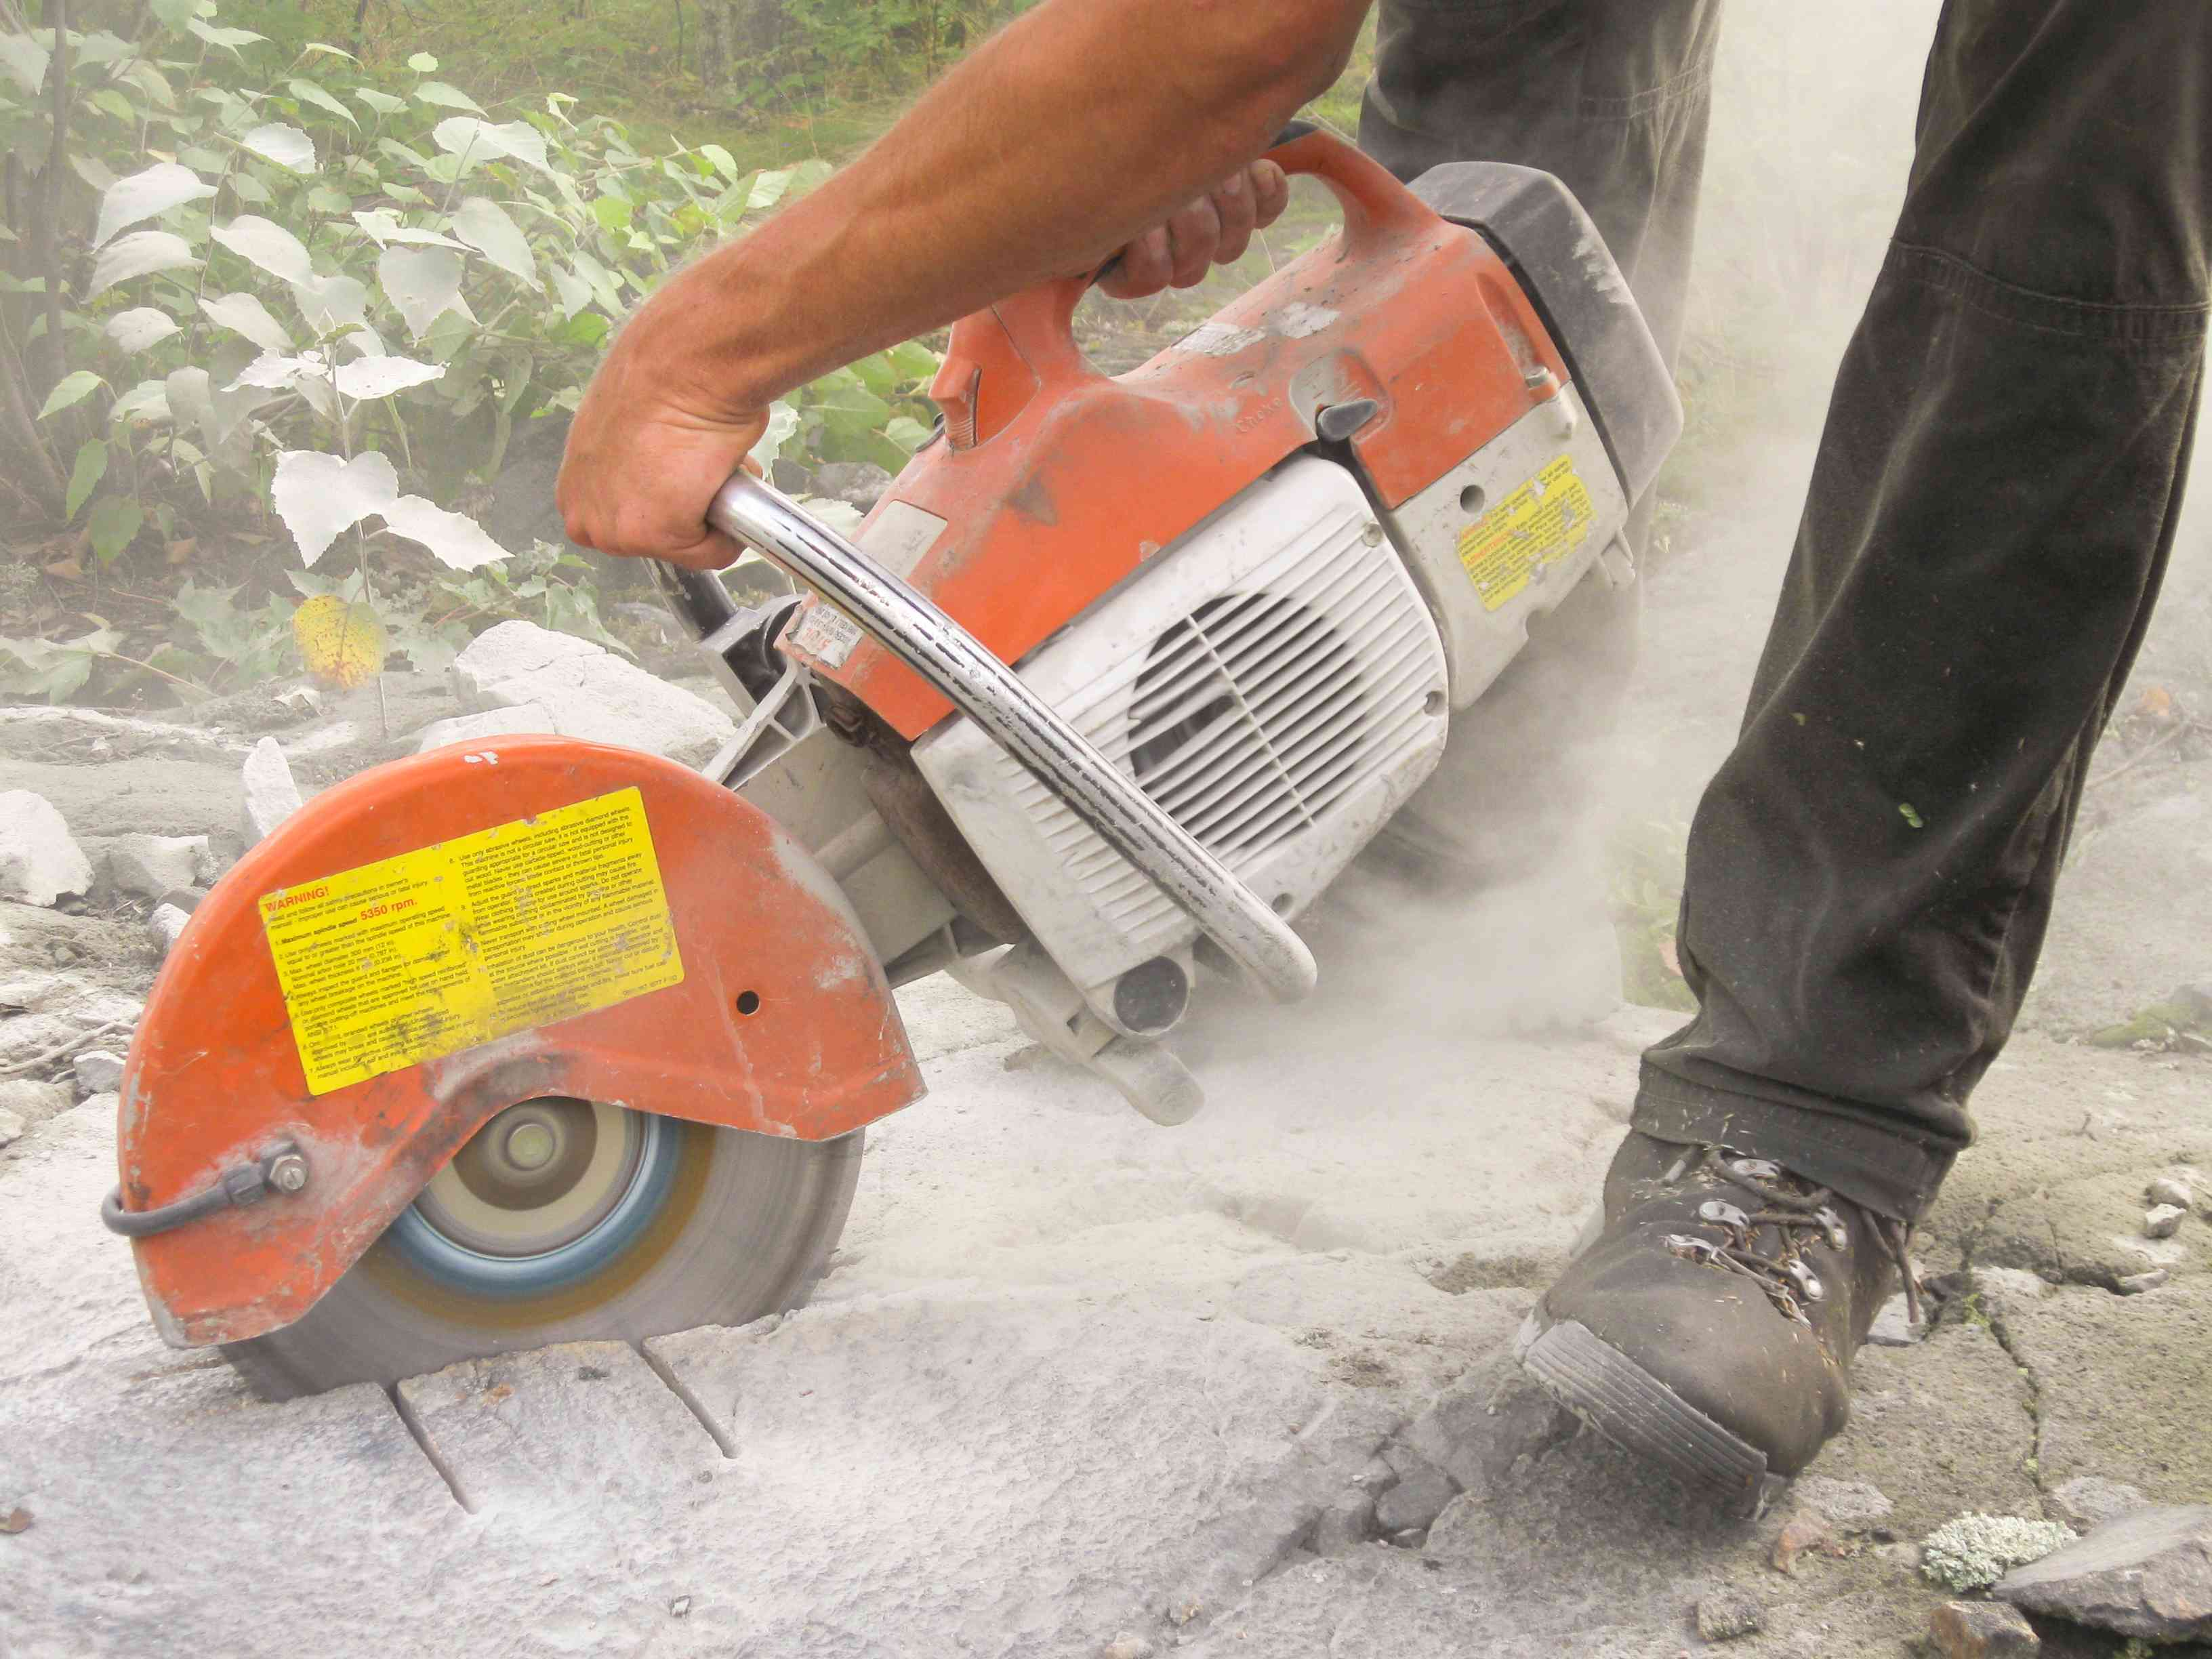 Man using groove cutter on concrete.